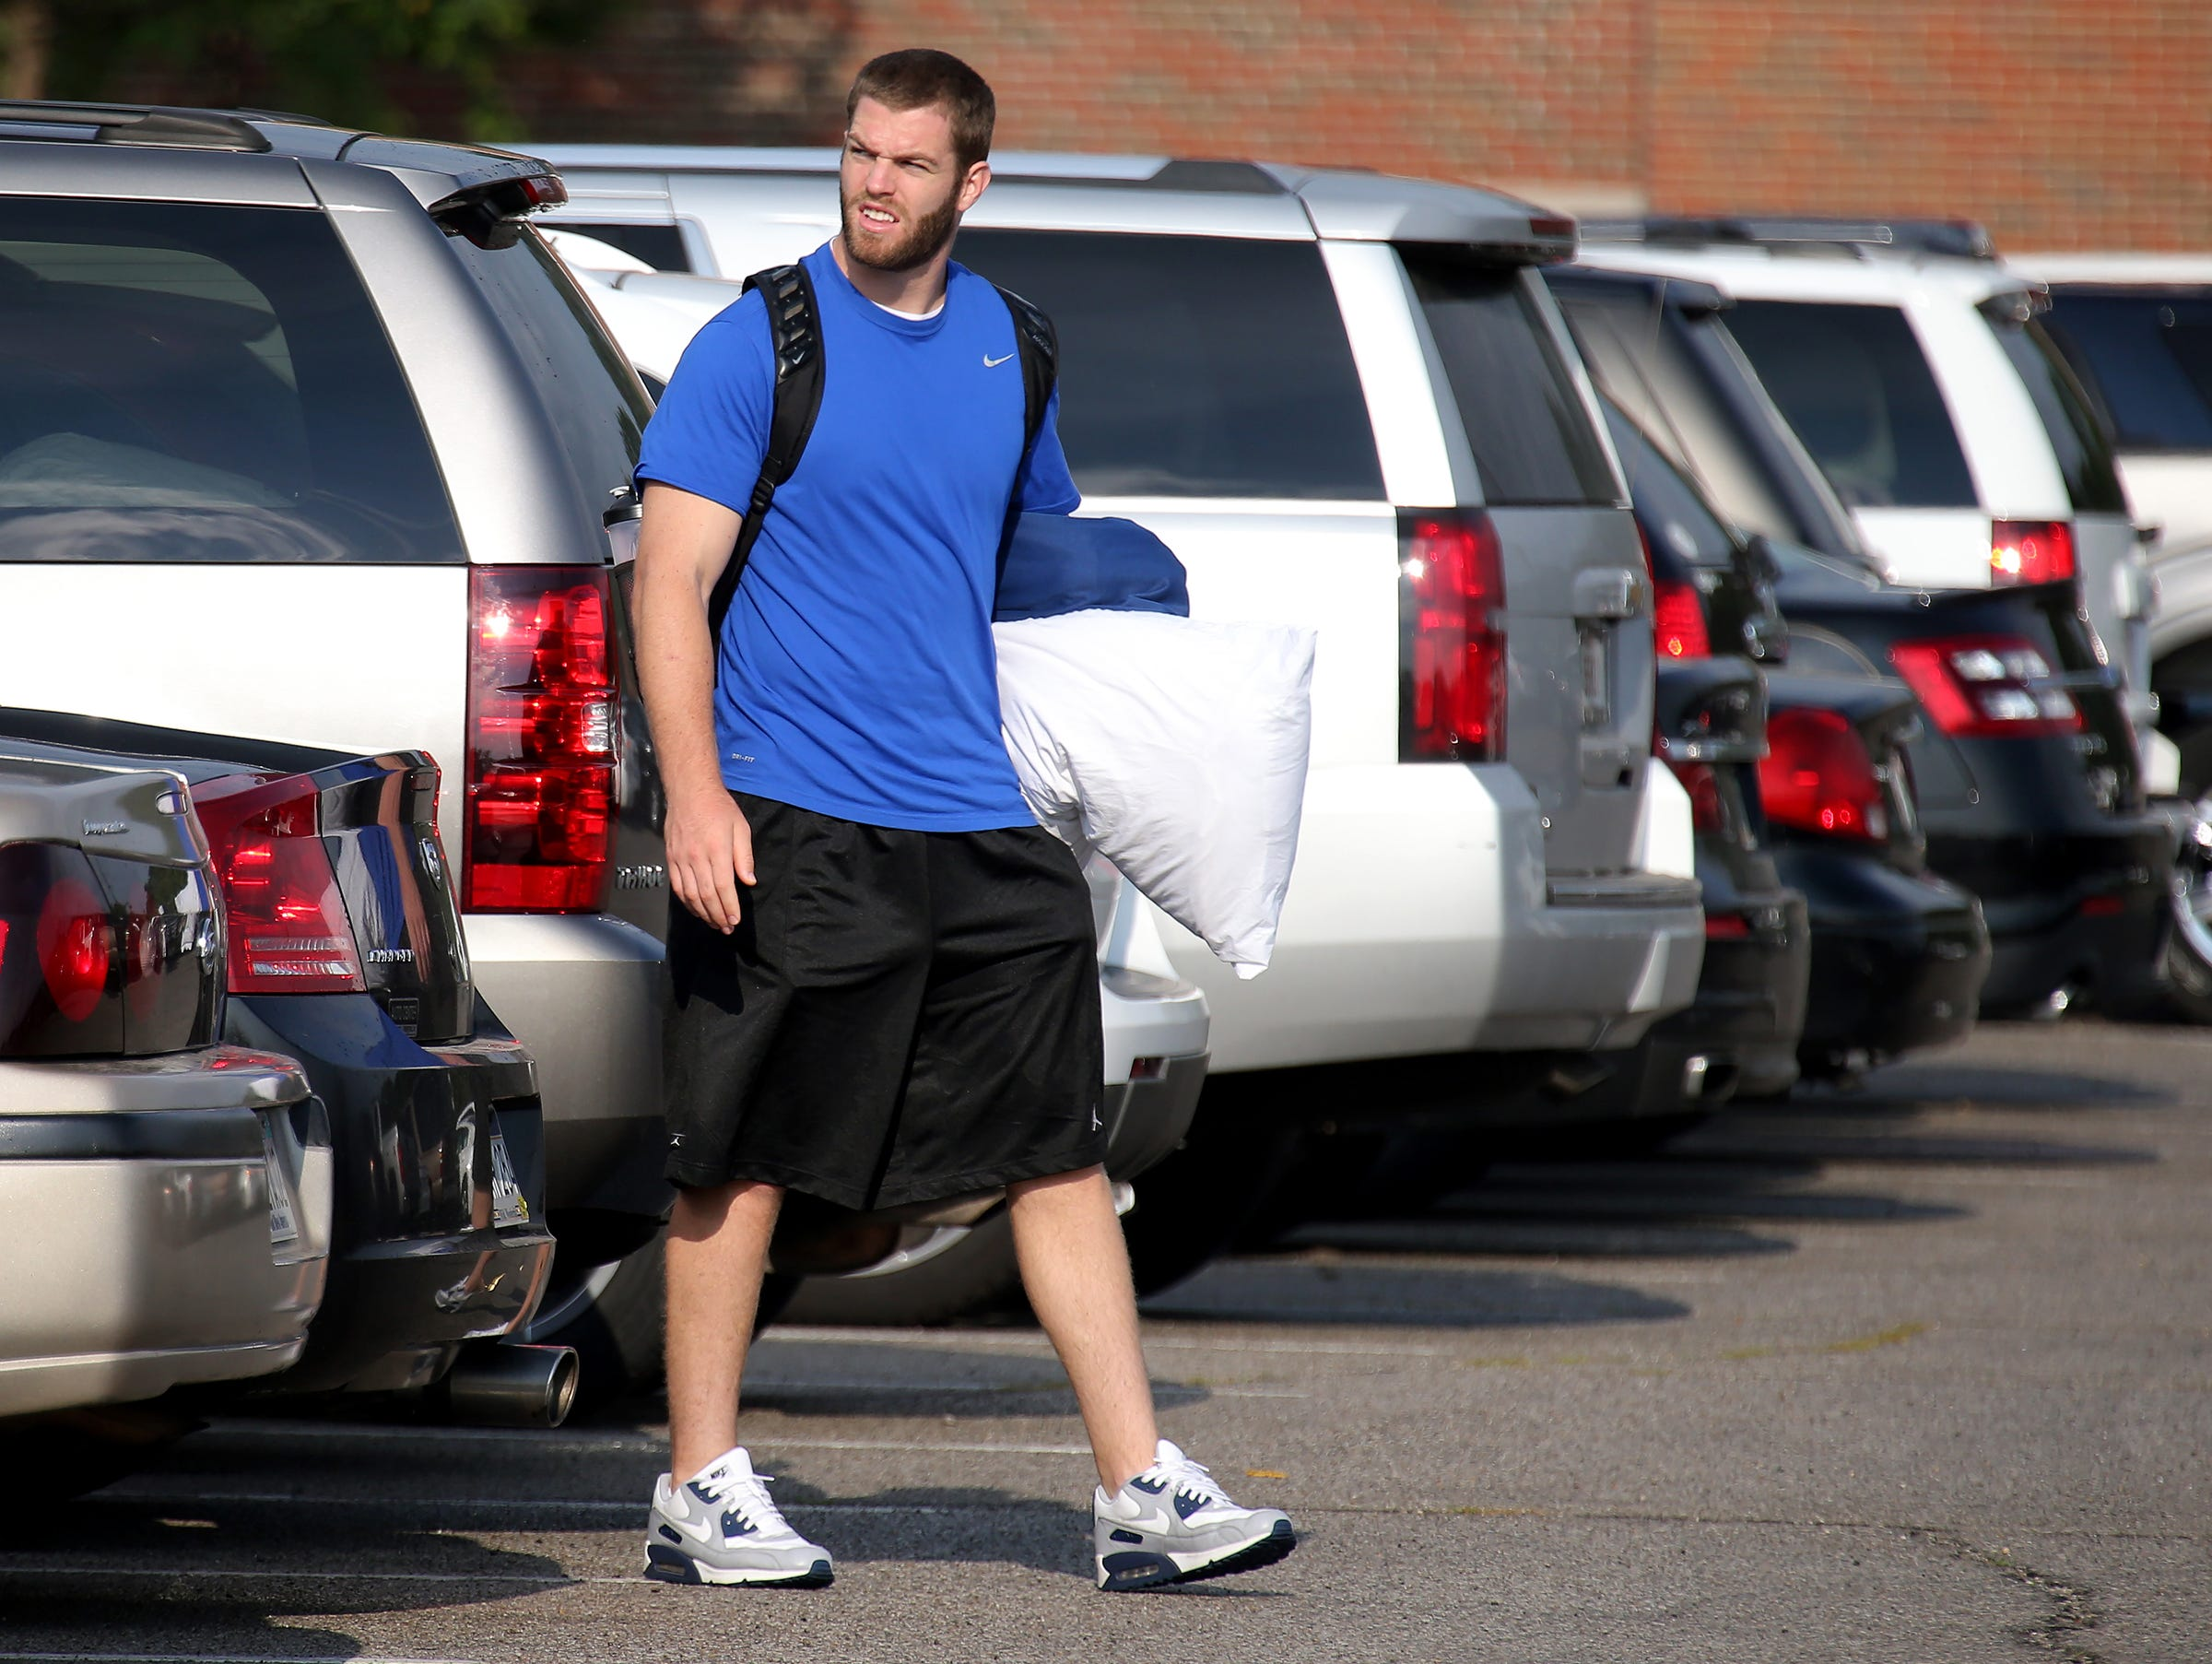 Indianapolis Colts tight end Jack Doyle arrives on the first day of training camp, on Wednesday, July 23, 2014, at Anderson University.